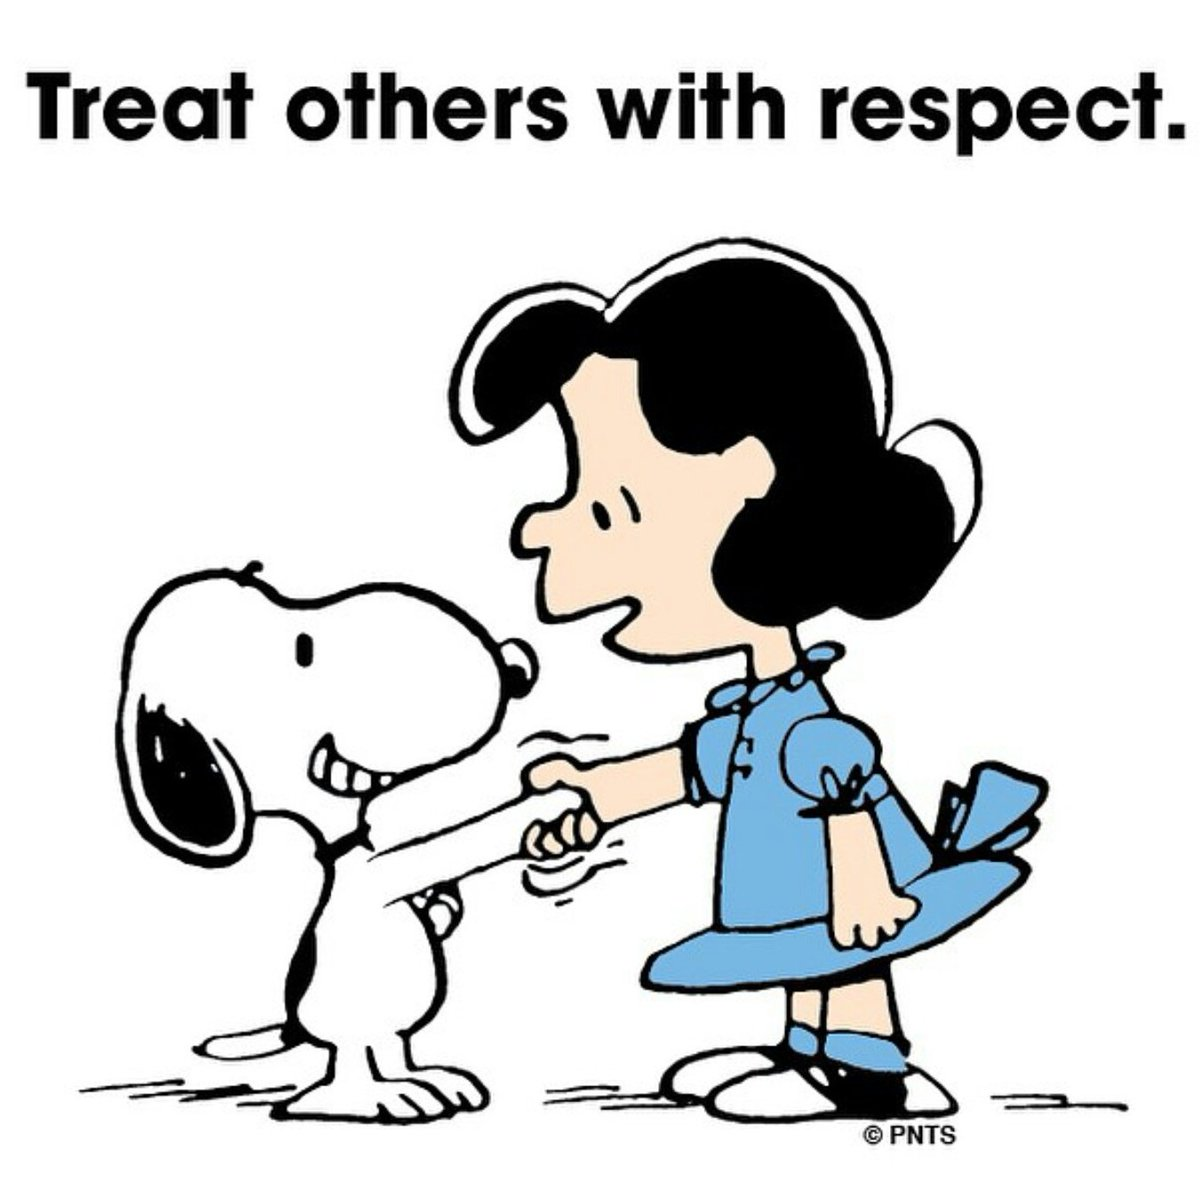 how to make people treat you better